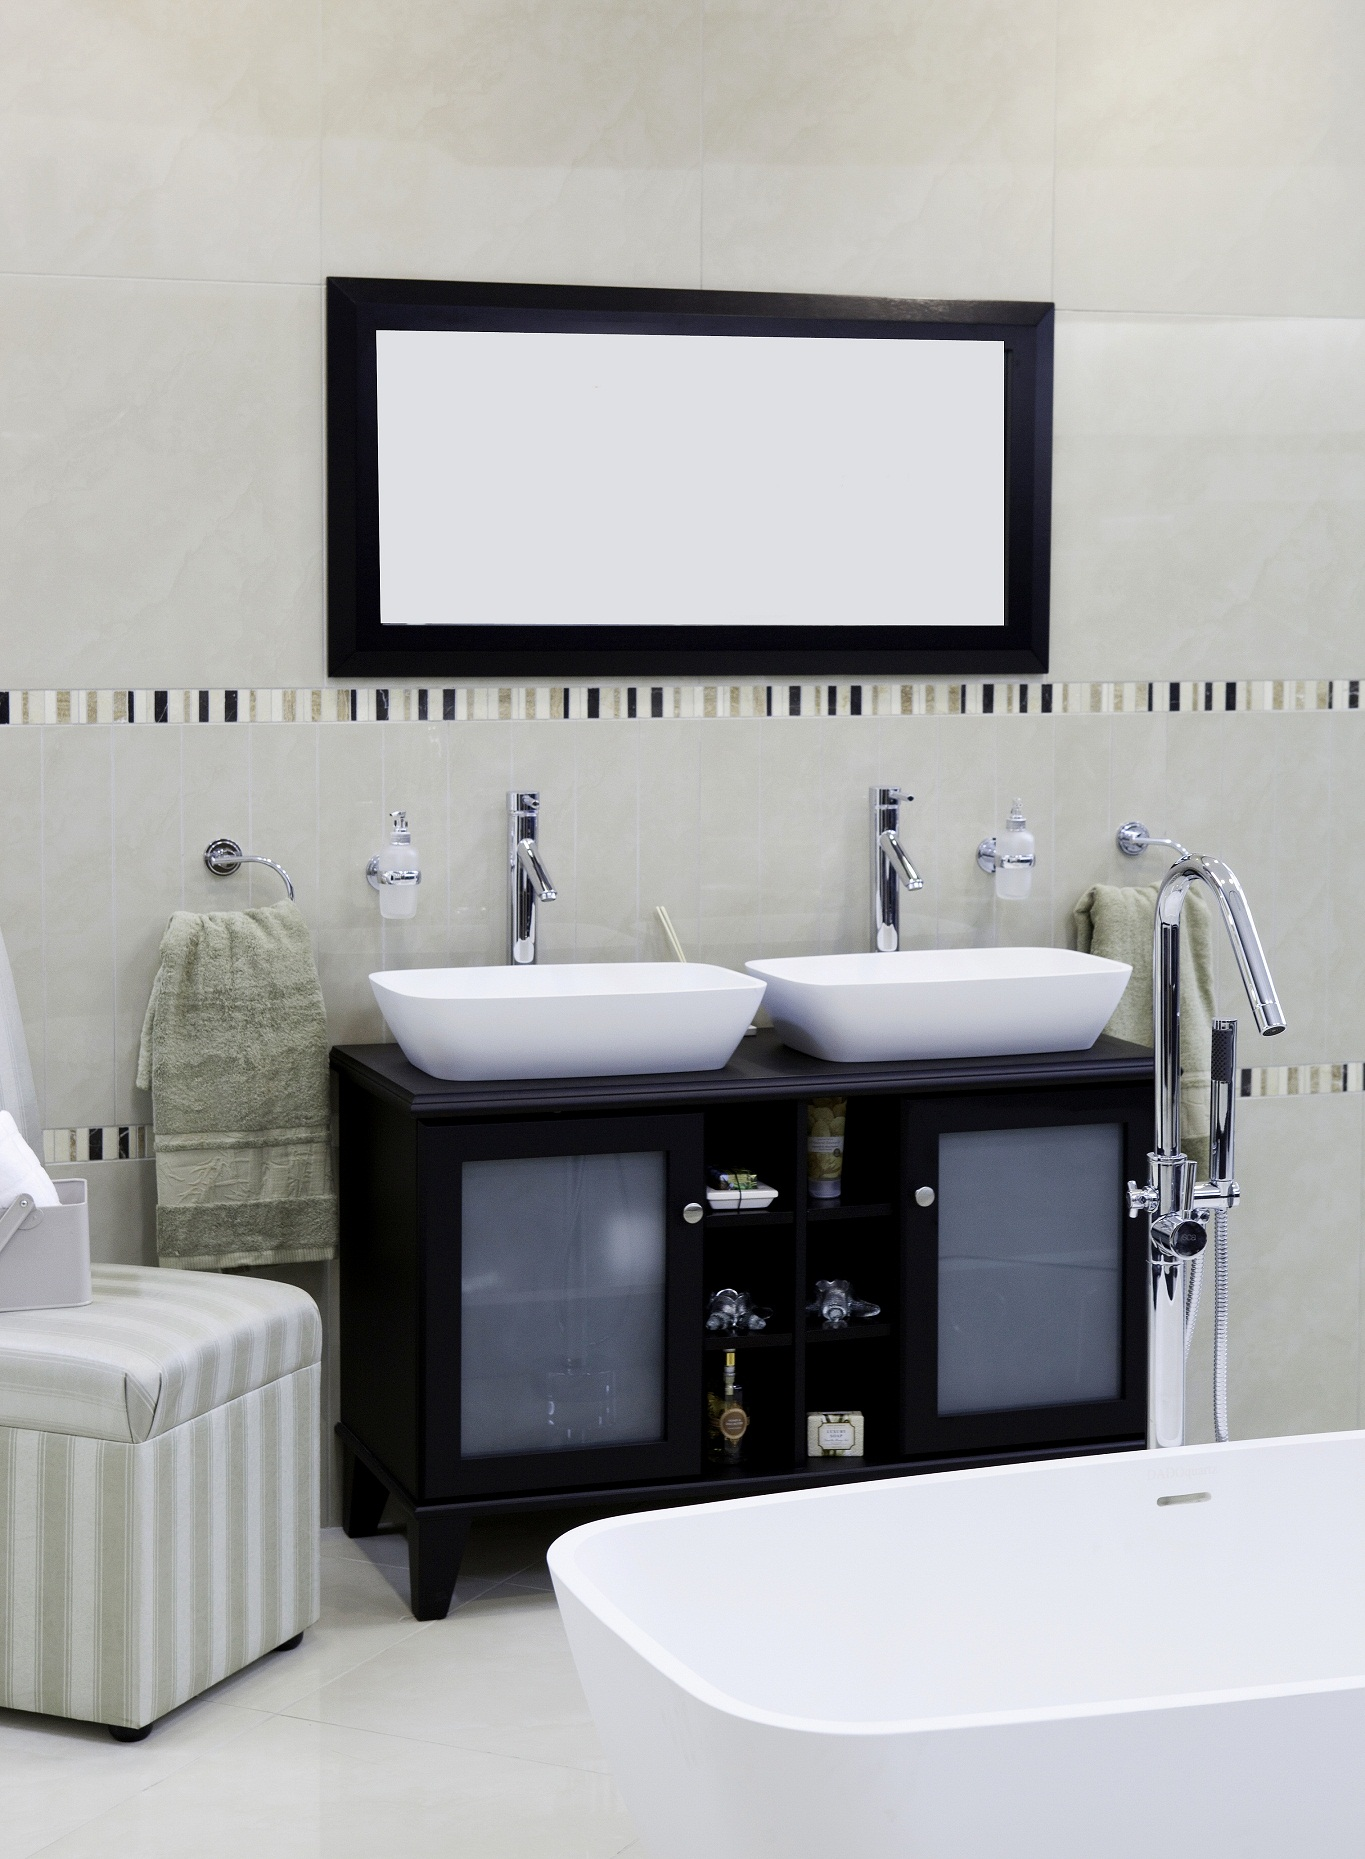 Top bathroom trends for 2012